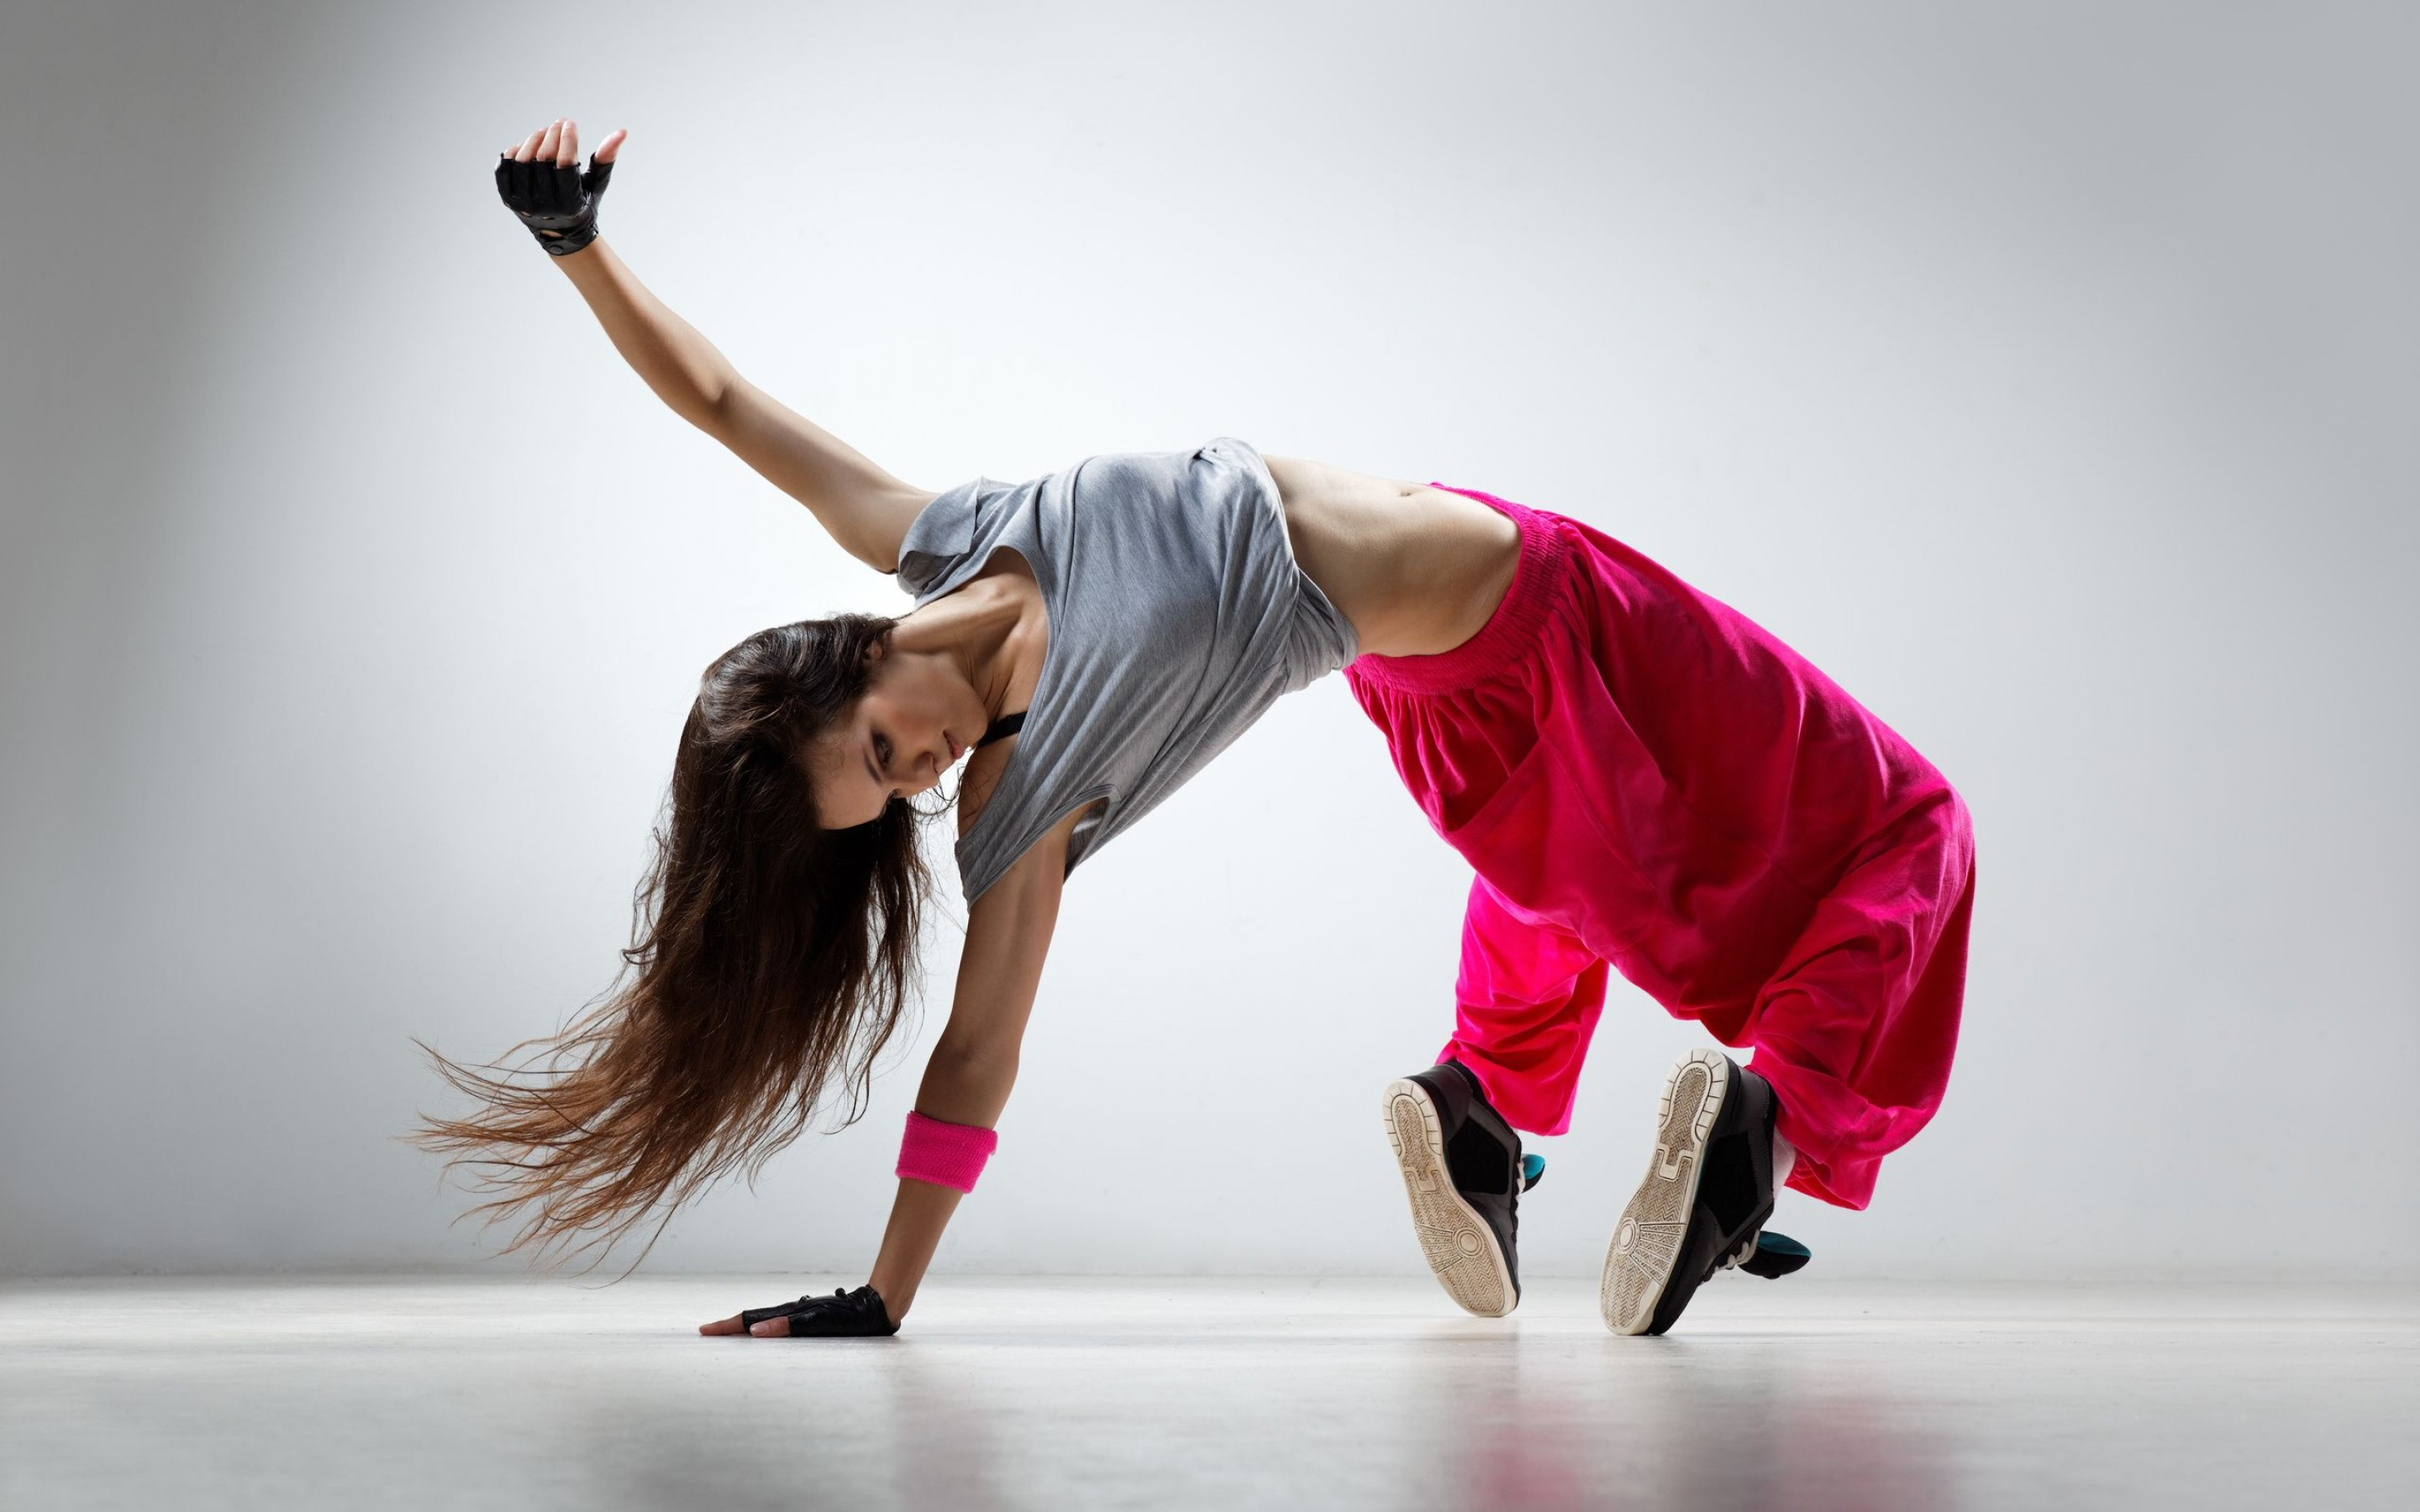 Hip hop dance by a girl hd desktop wallpaper widescreen backgrounds httpworldbuyersshopwp voltagebd